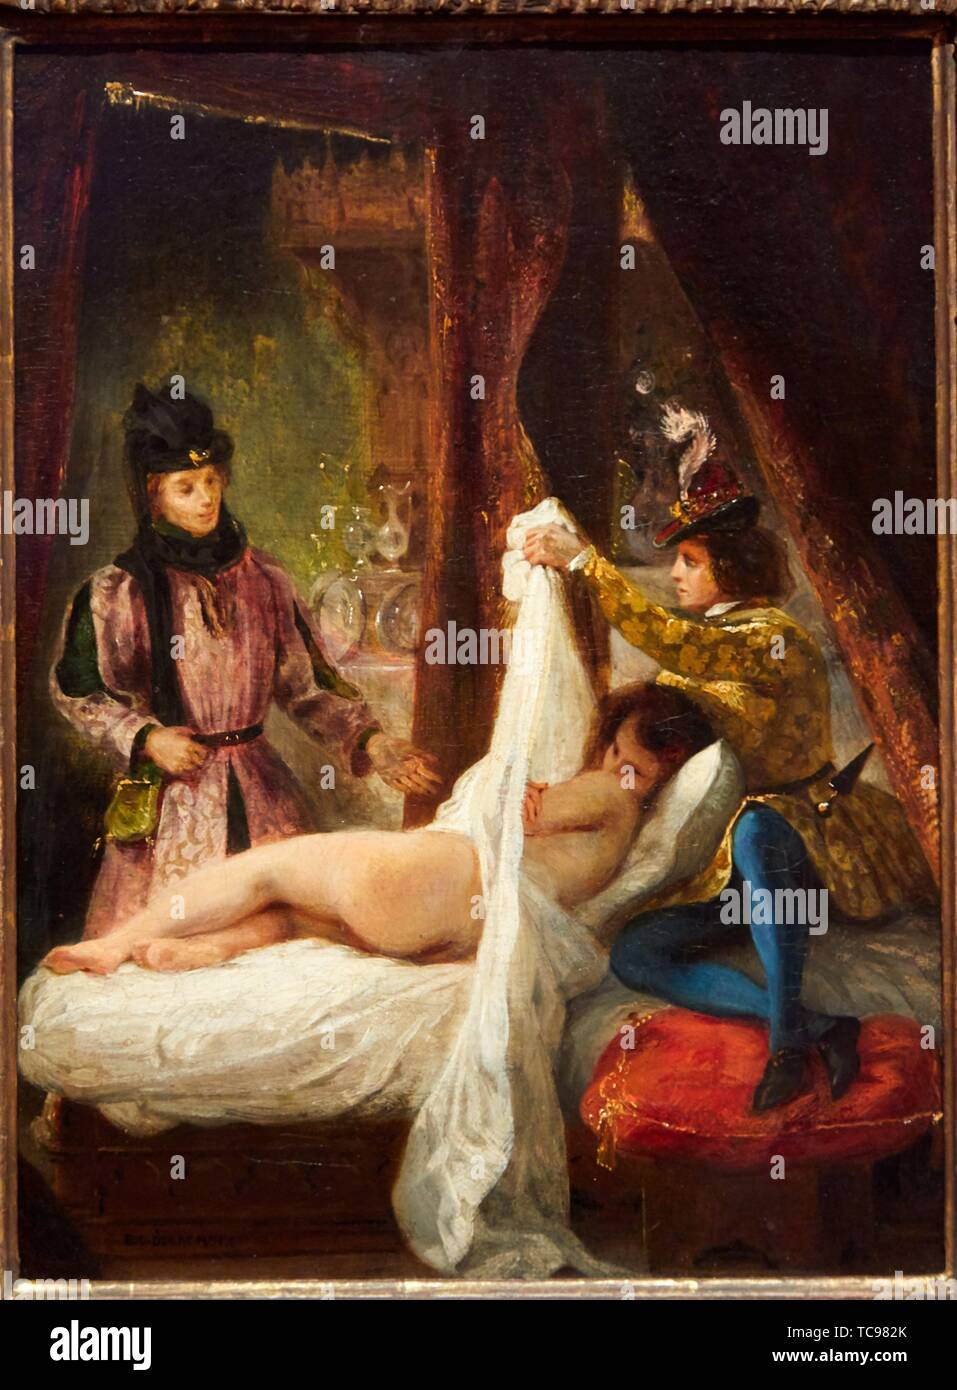 '''The Duke of Orleans showing his Lover'', 1825-1826, Eugène Delacroix, Thyssen Bornemisza Museum, Madrid, Spain, Europe - Stock Image